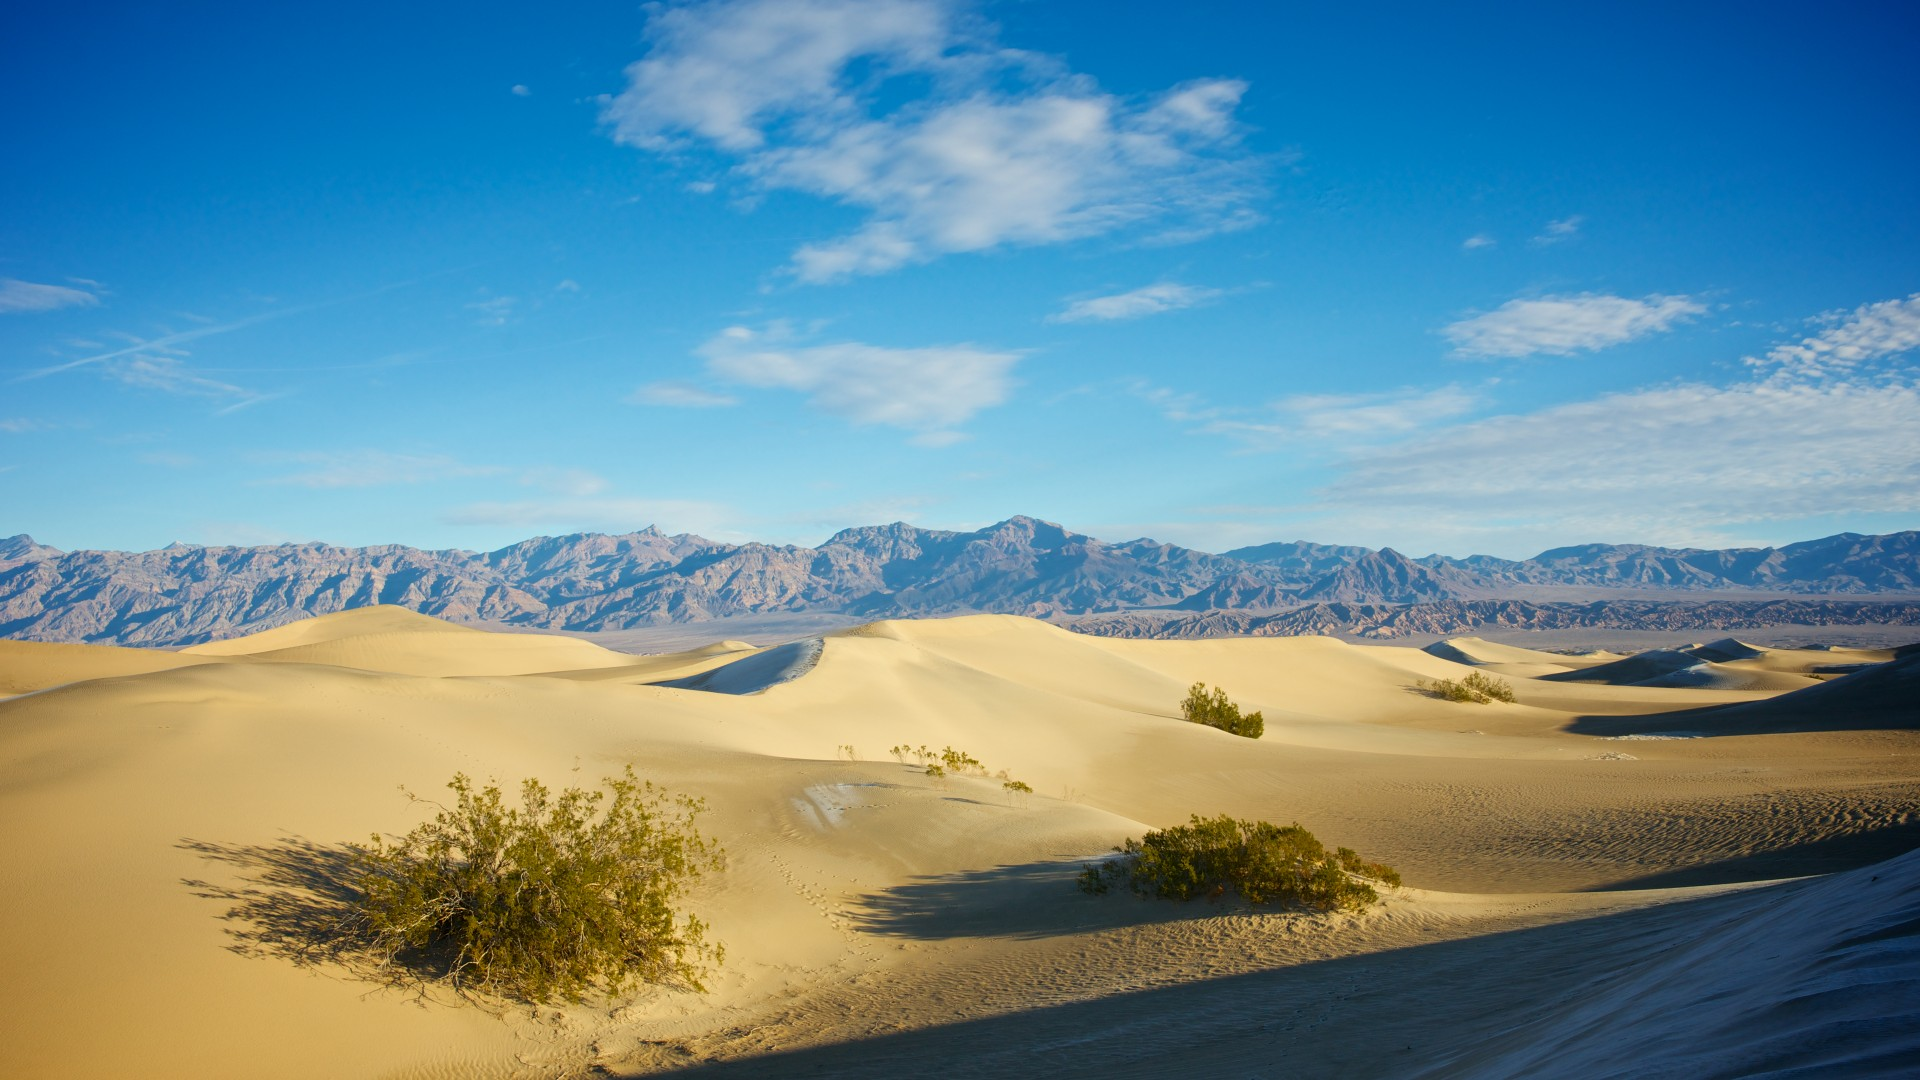 Sand Dune near Stovepipe Wells in Death Valley National Park, Parks and Recreation Month